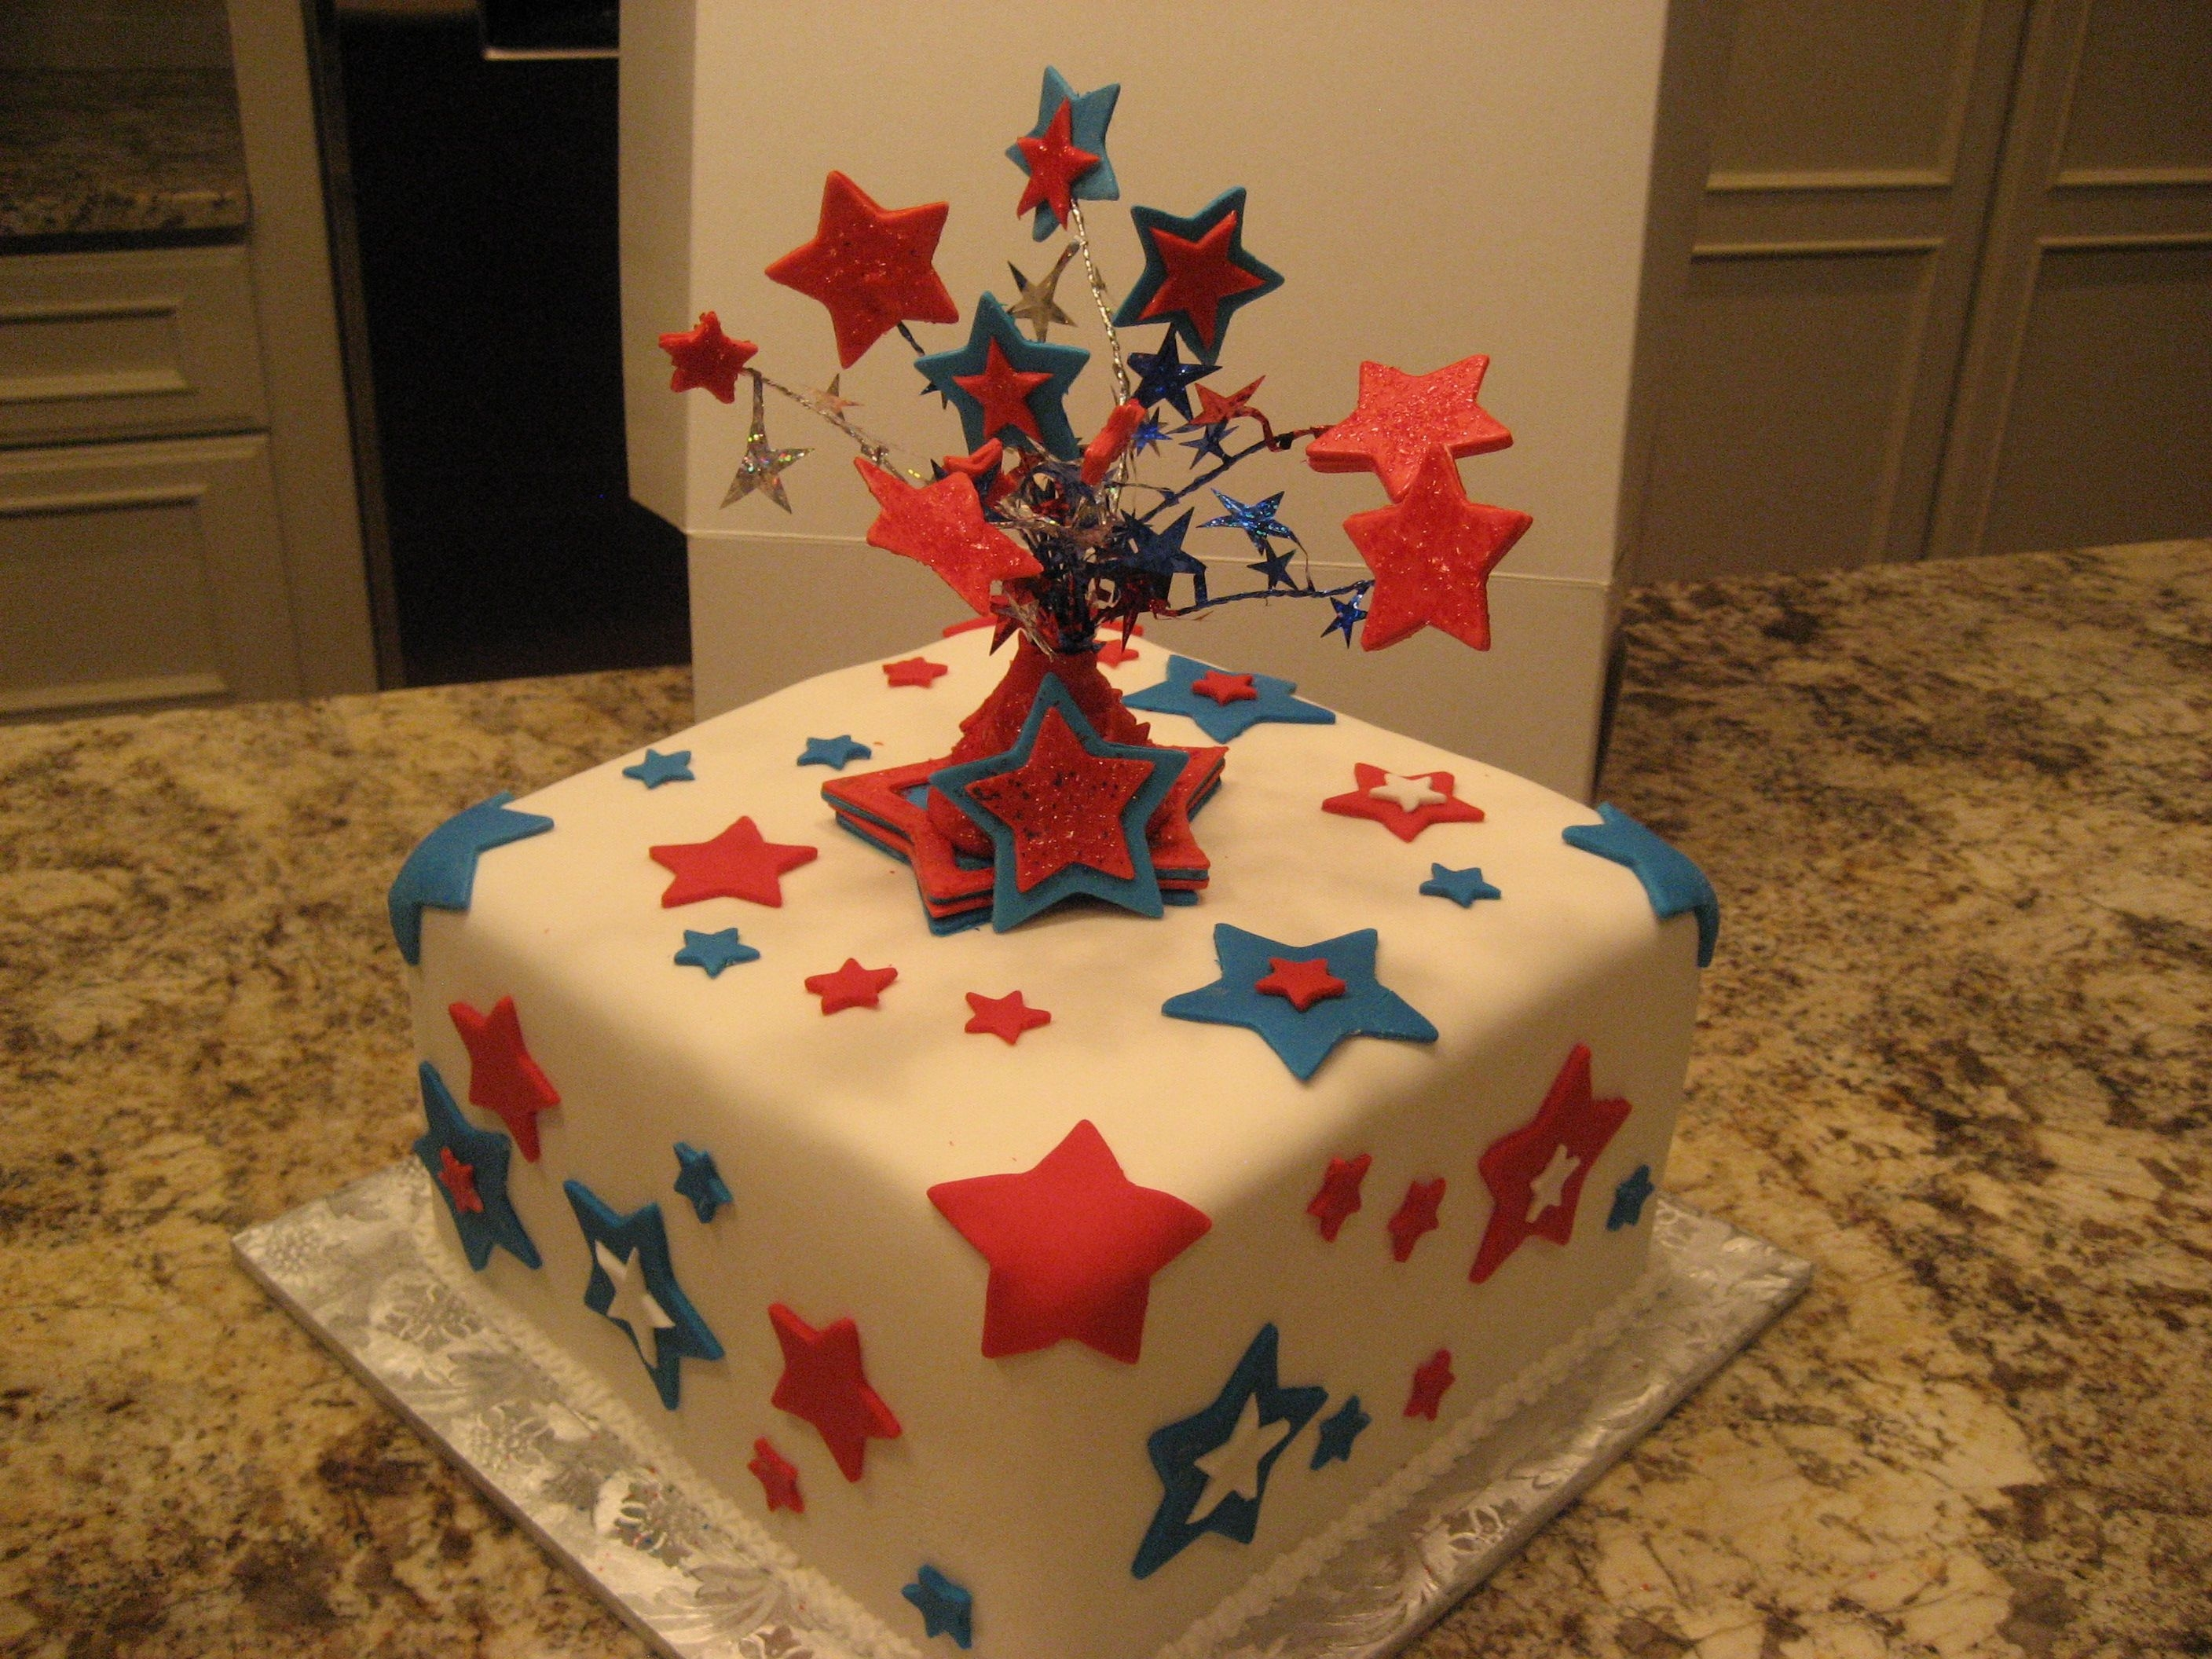 100Th Birthday On Flag Day! Red, white and blue stars